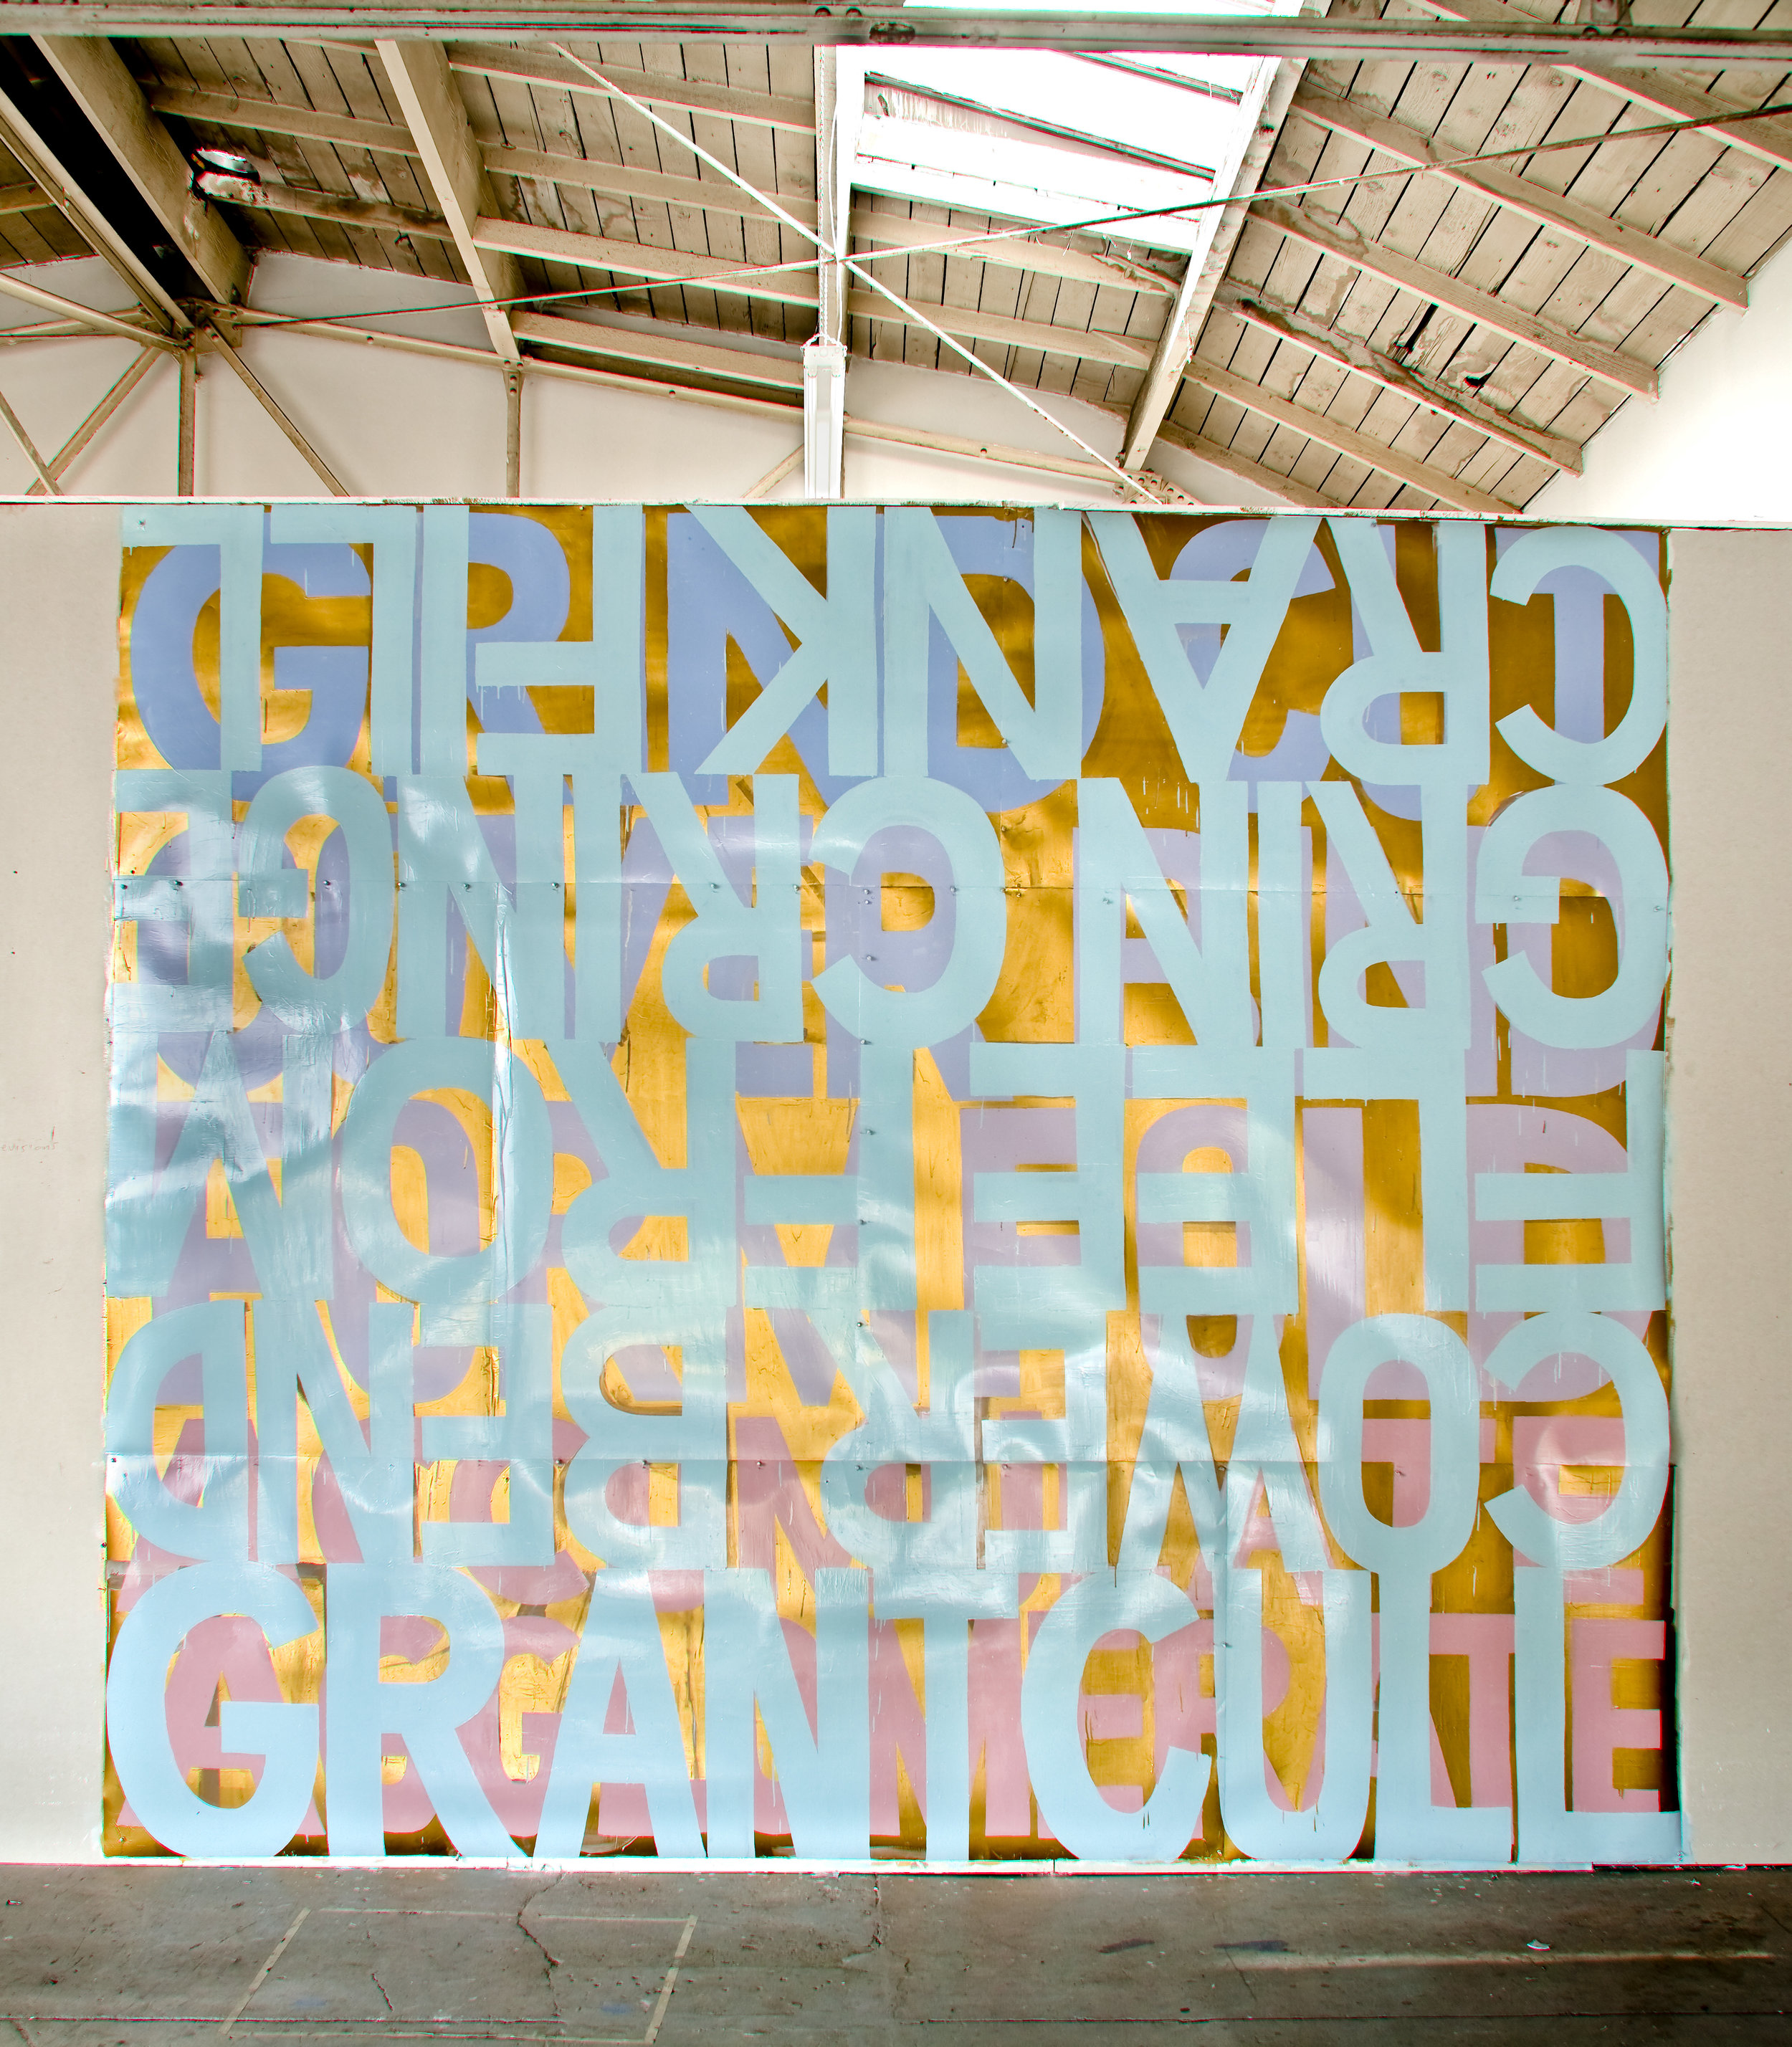 "GRANT CULL / COWER BEND / FLEE FROM / GRIN CRINGE / CRANK FILL 2009-10  Sign paint on laminated digital prints (from 1997-8 installation). 110"" x 120"""